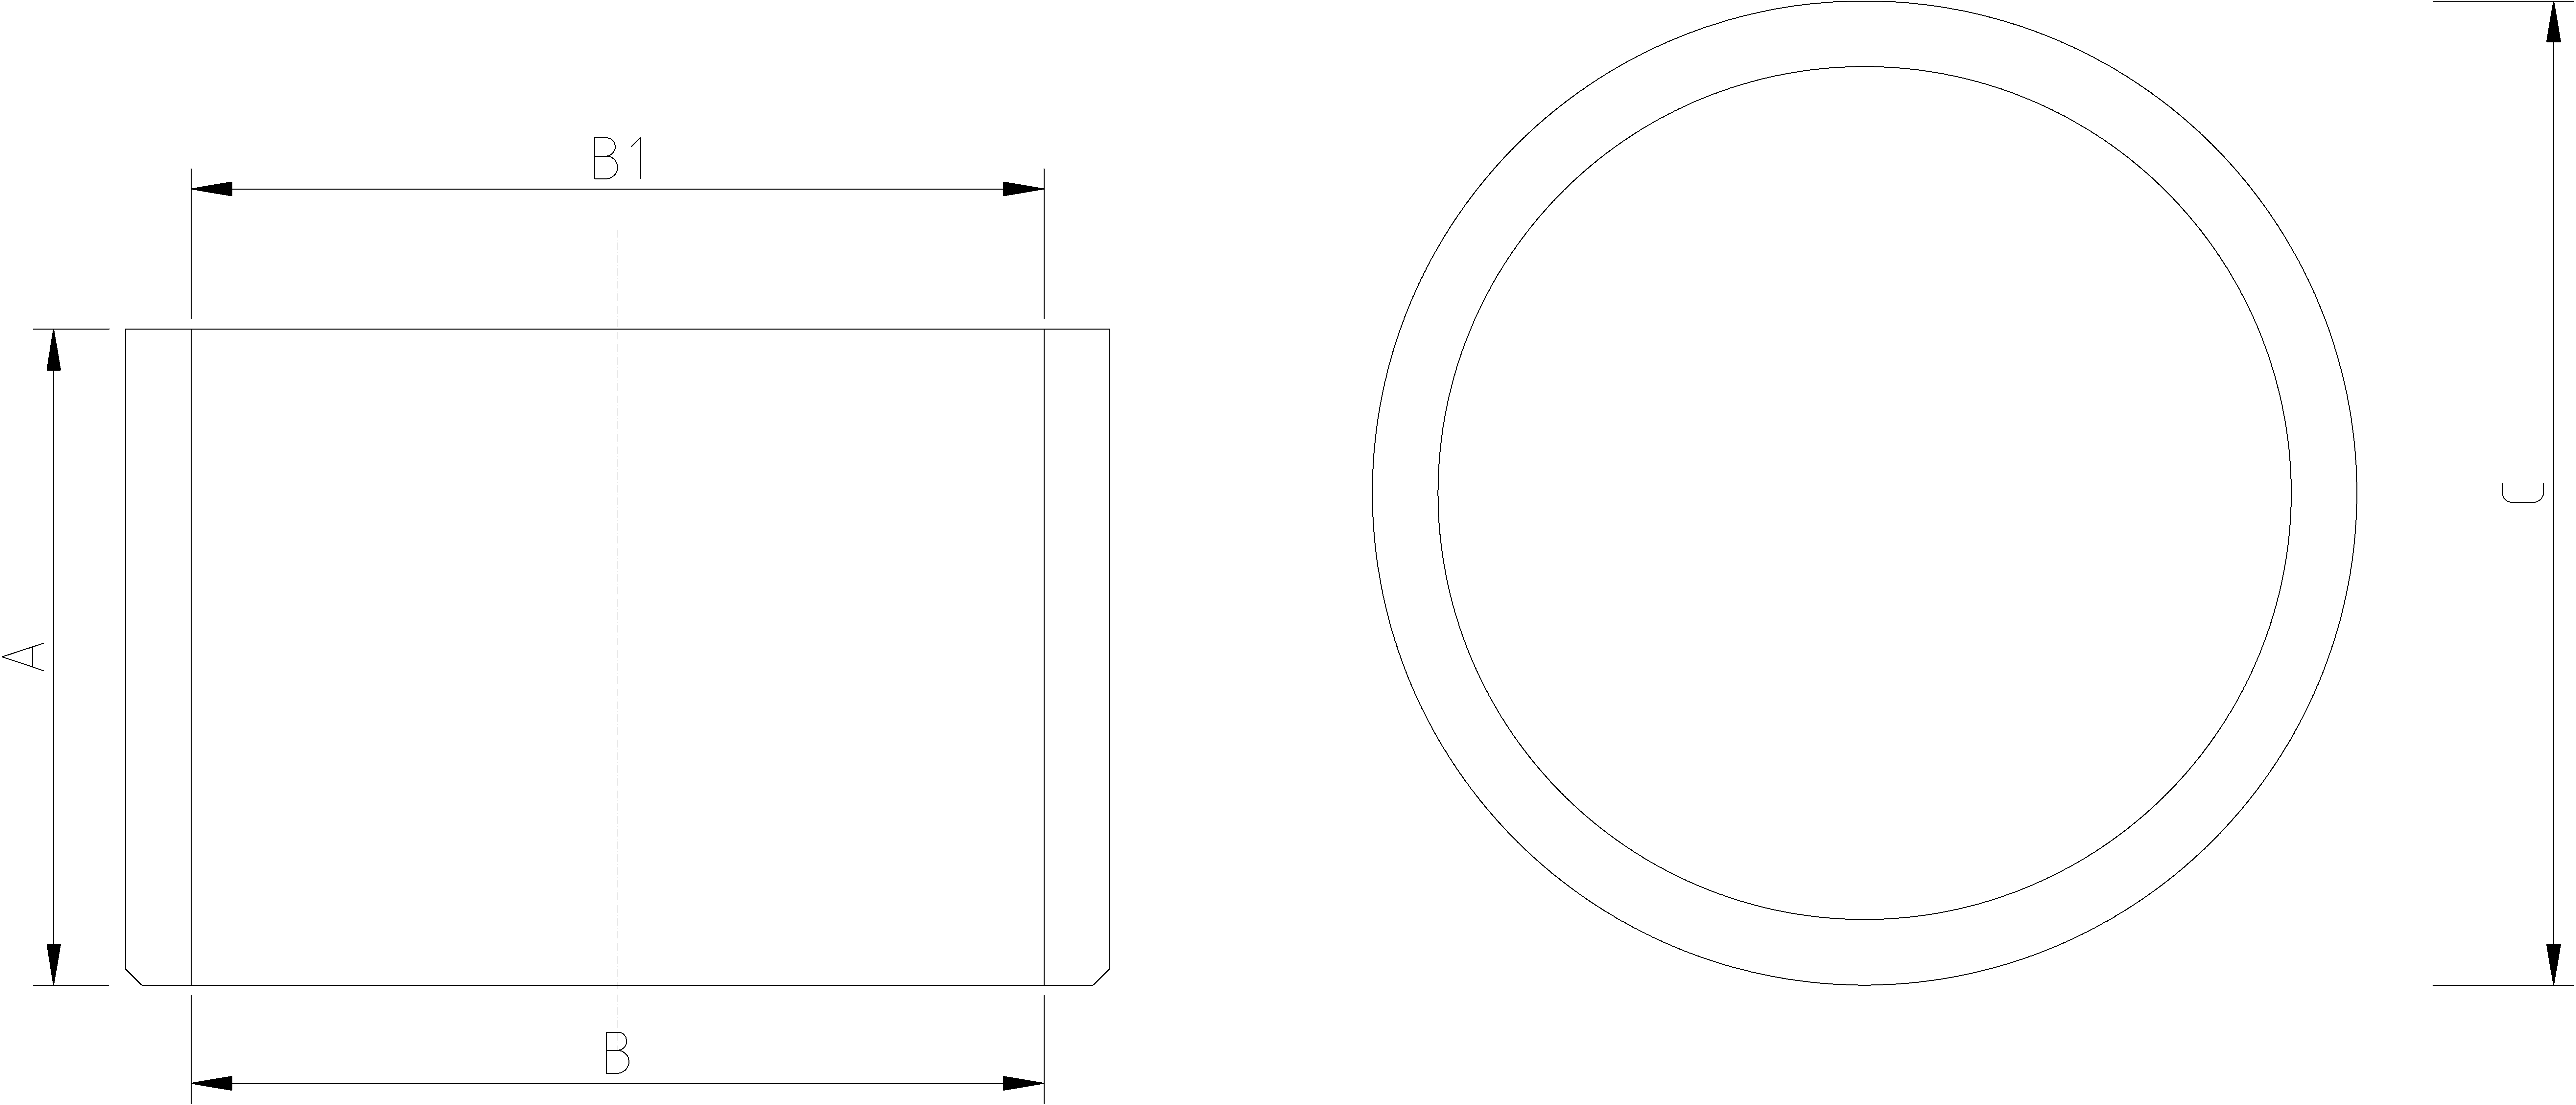 1/2 to 3-8 Inch Reducing Bush Dimensions Drawing